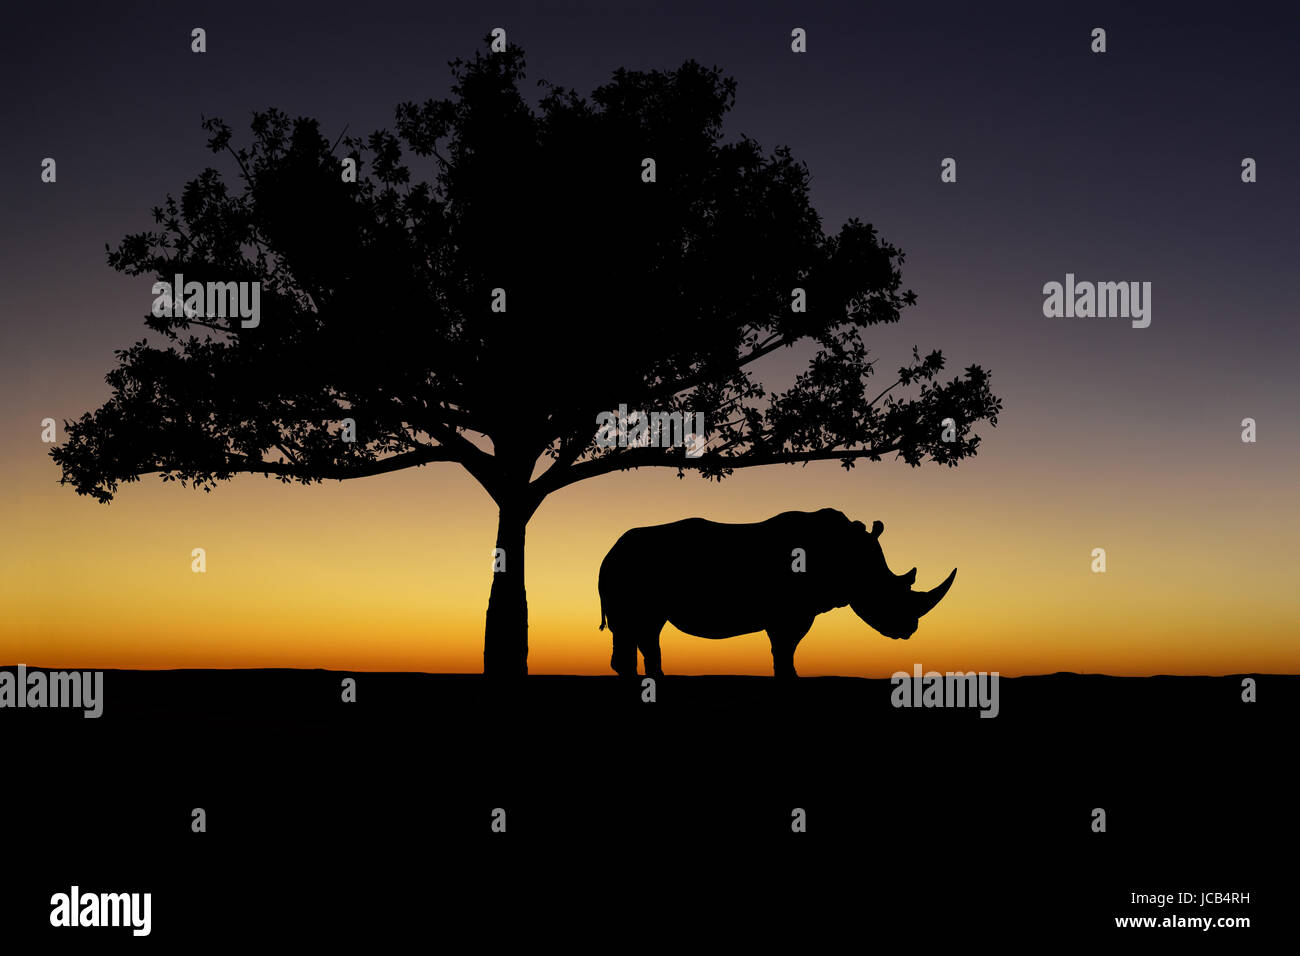 A White Rhino stands silhouetted under a tree at sunset - Stock Image